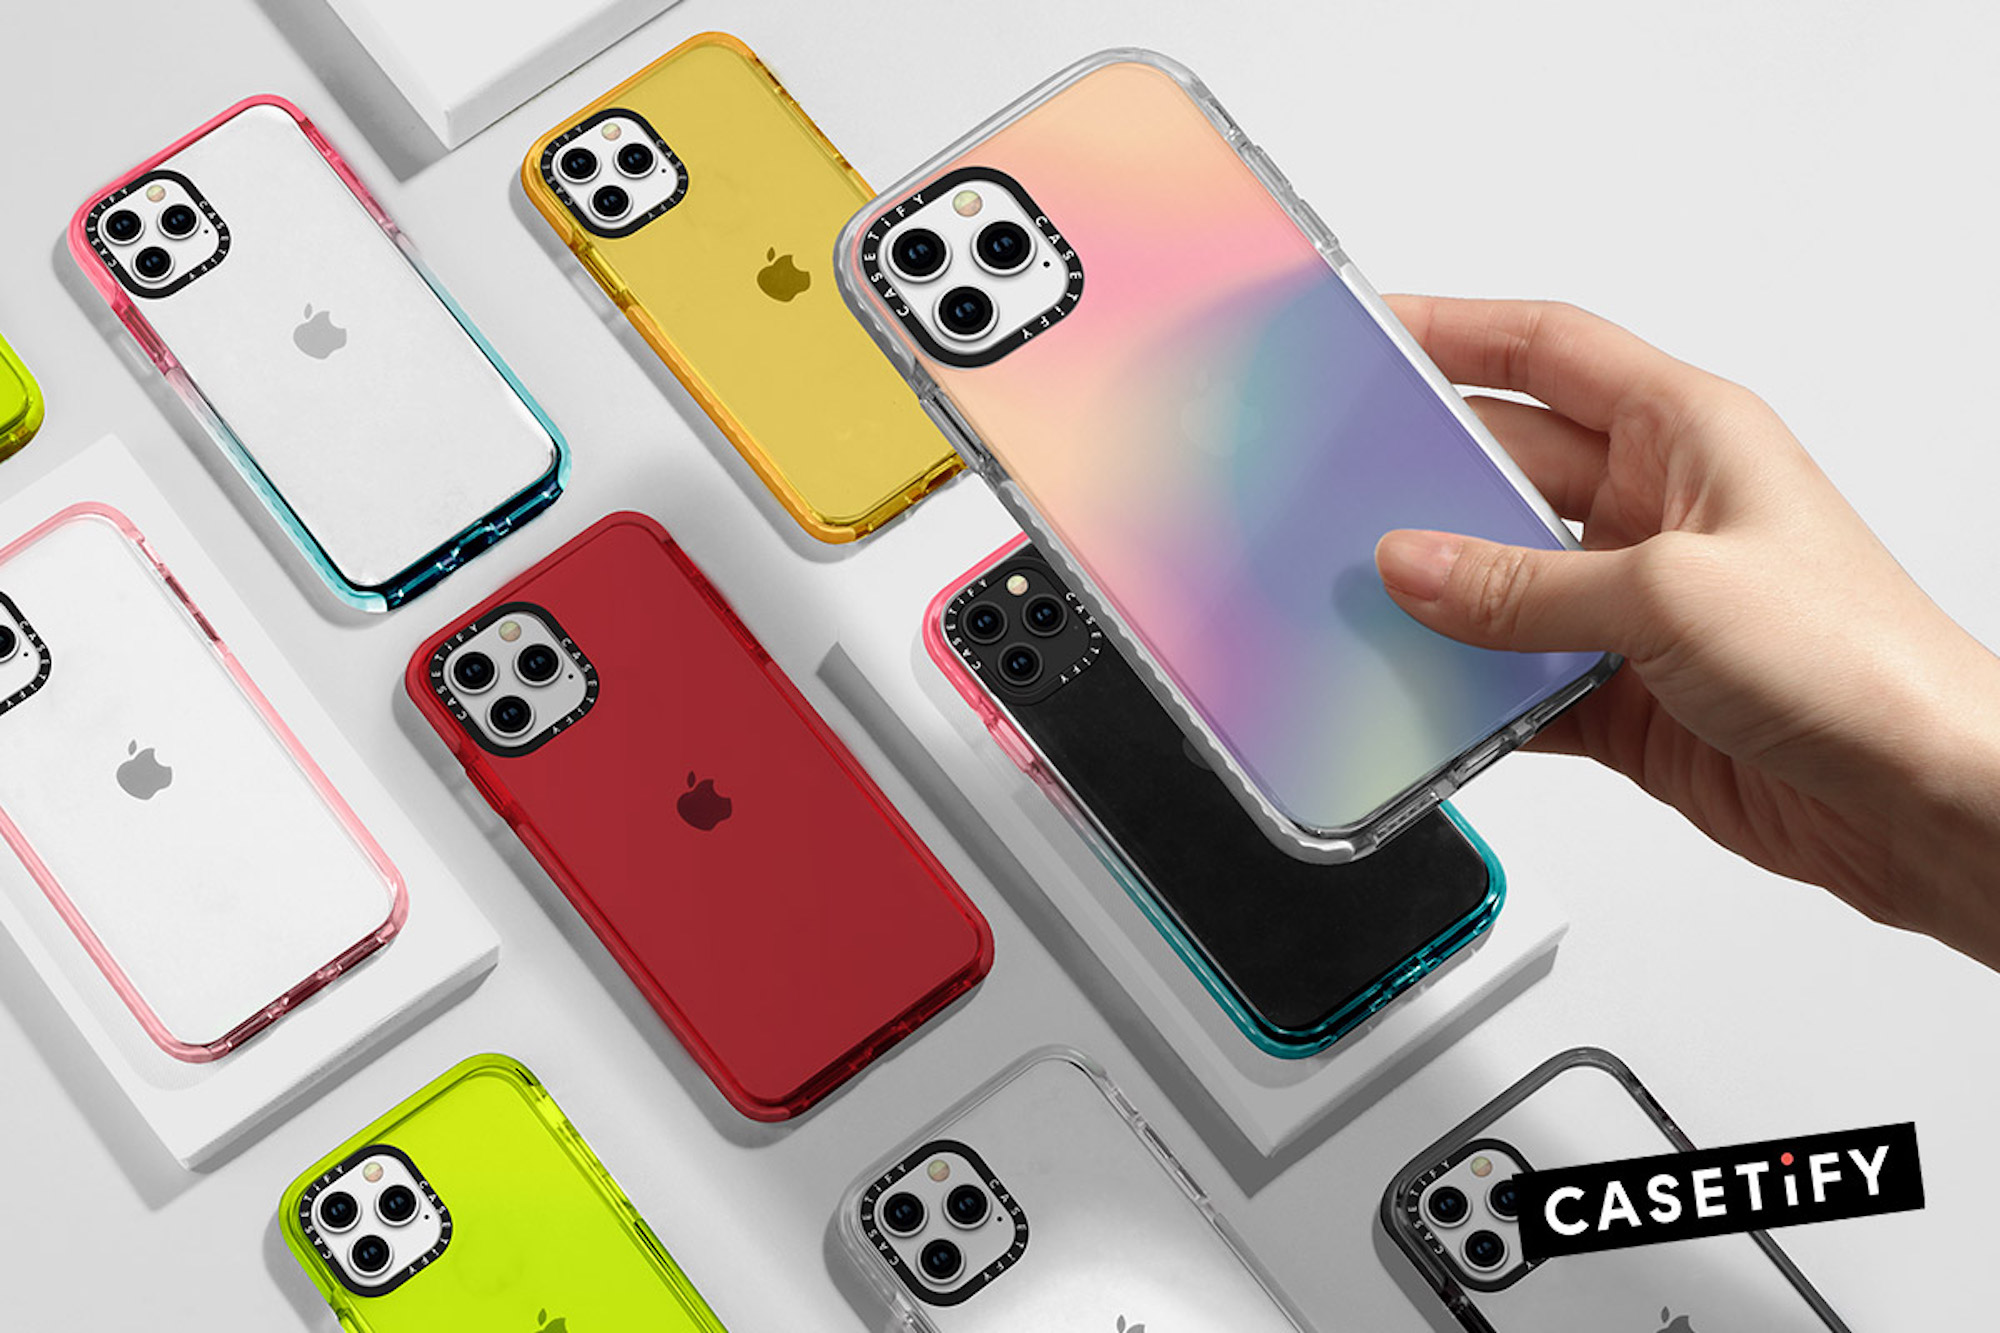 CASETiFY new holographic phone cases